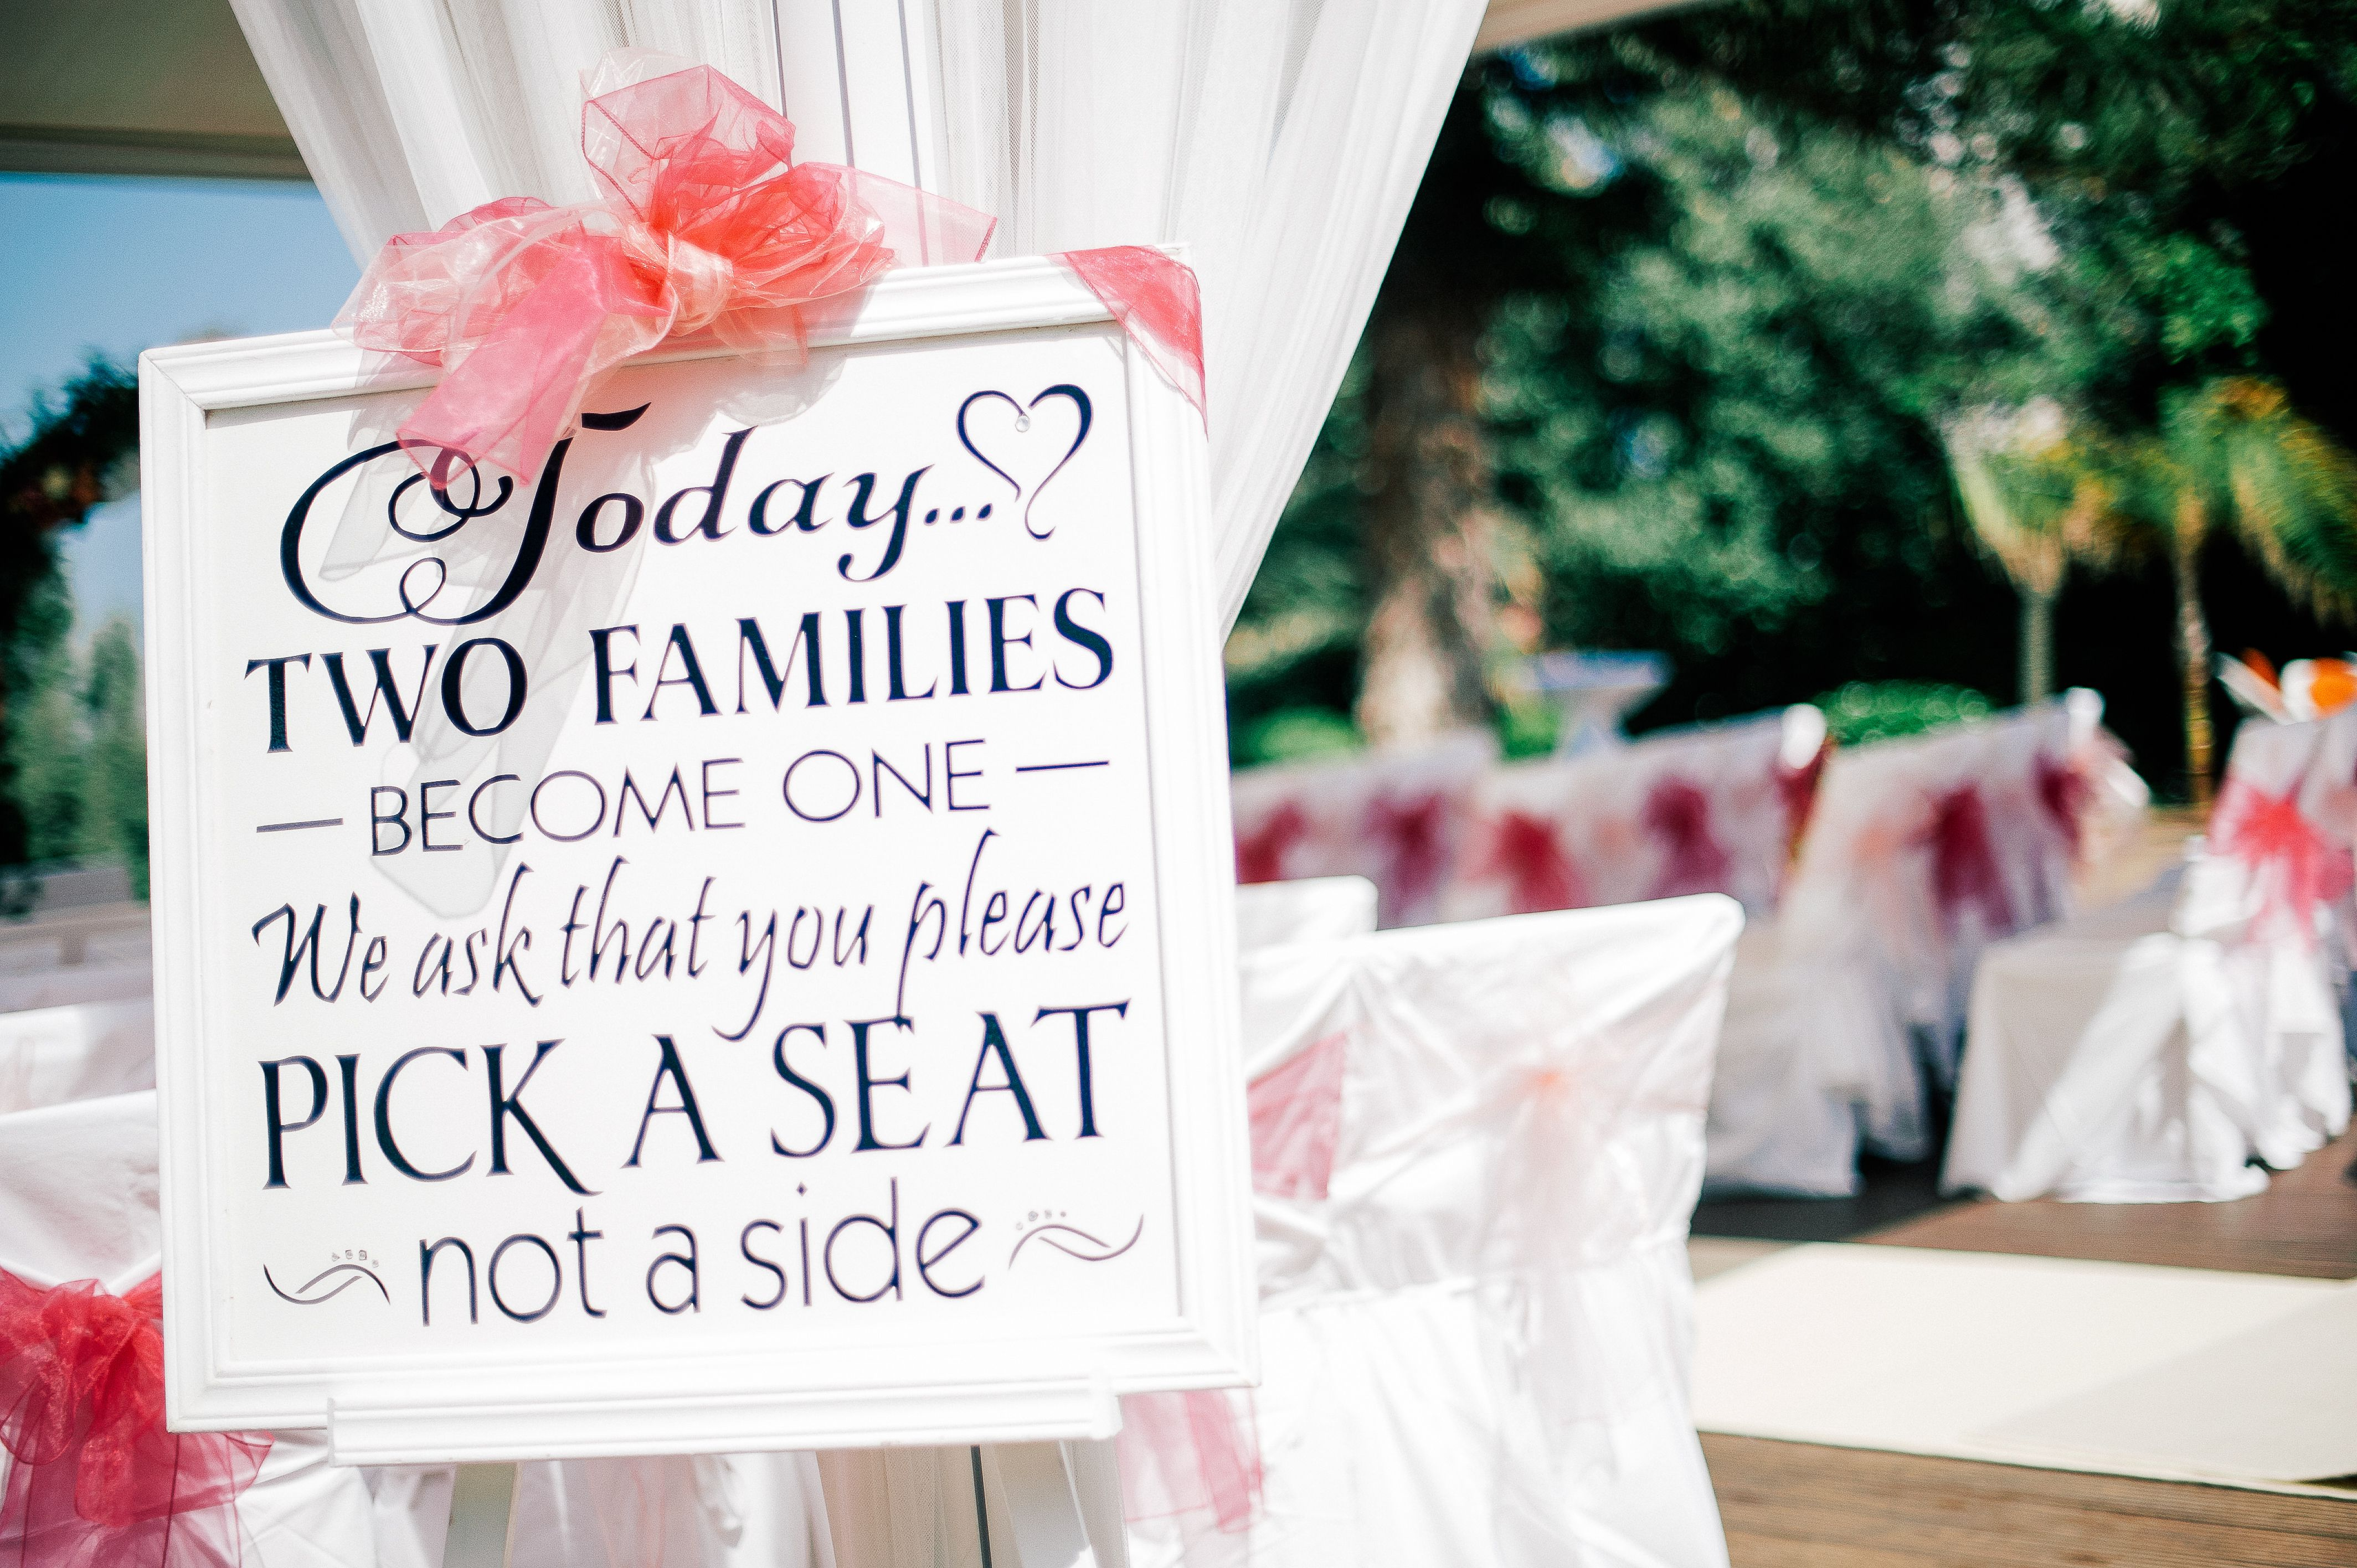 11 beautiful free wedding fonts perfect for invites